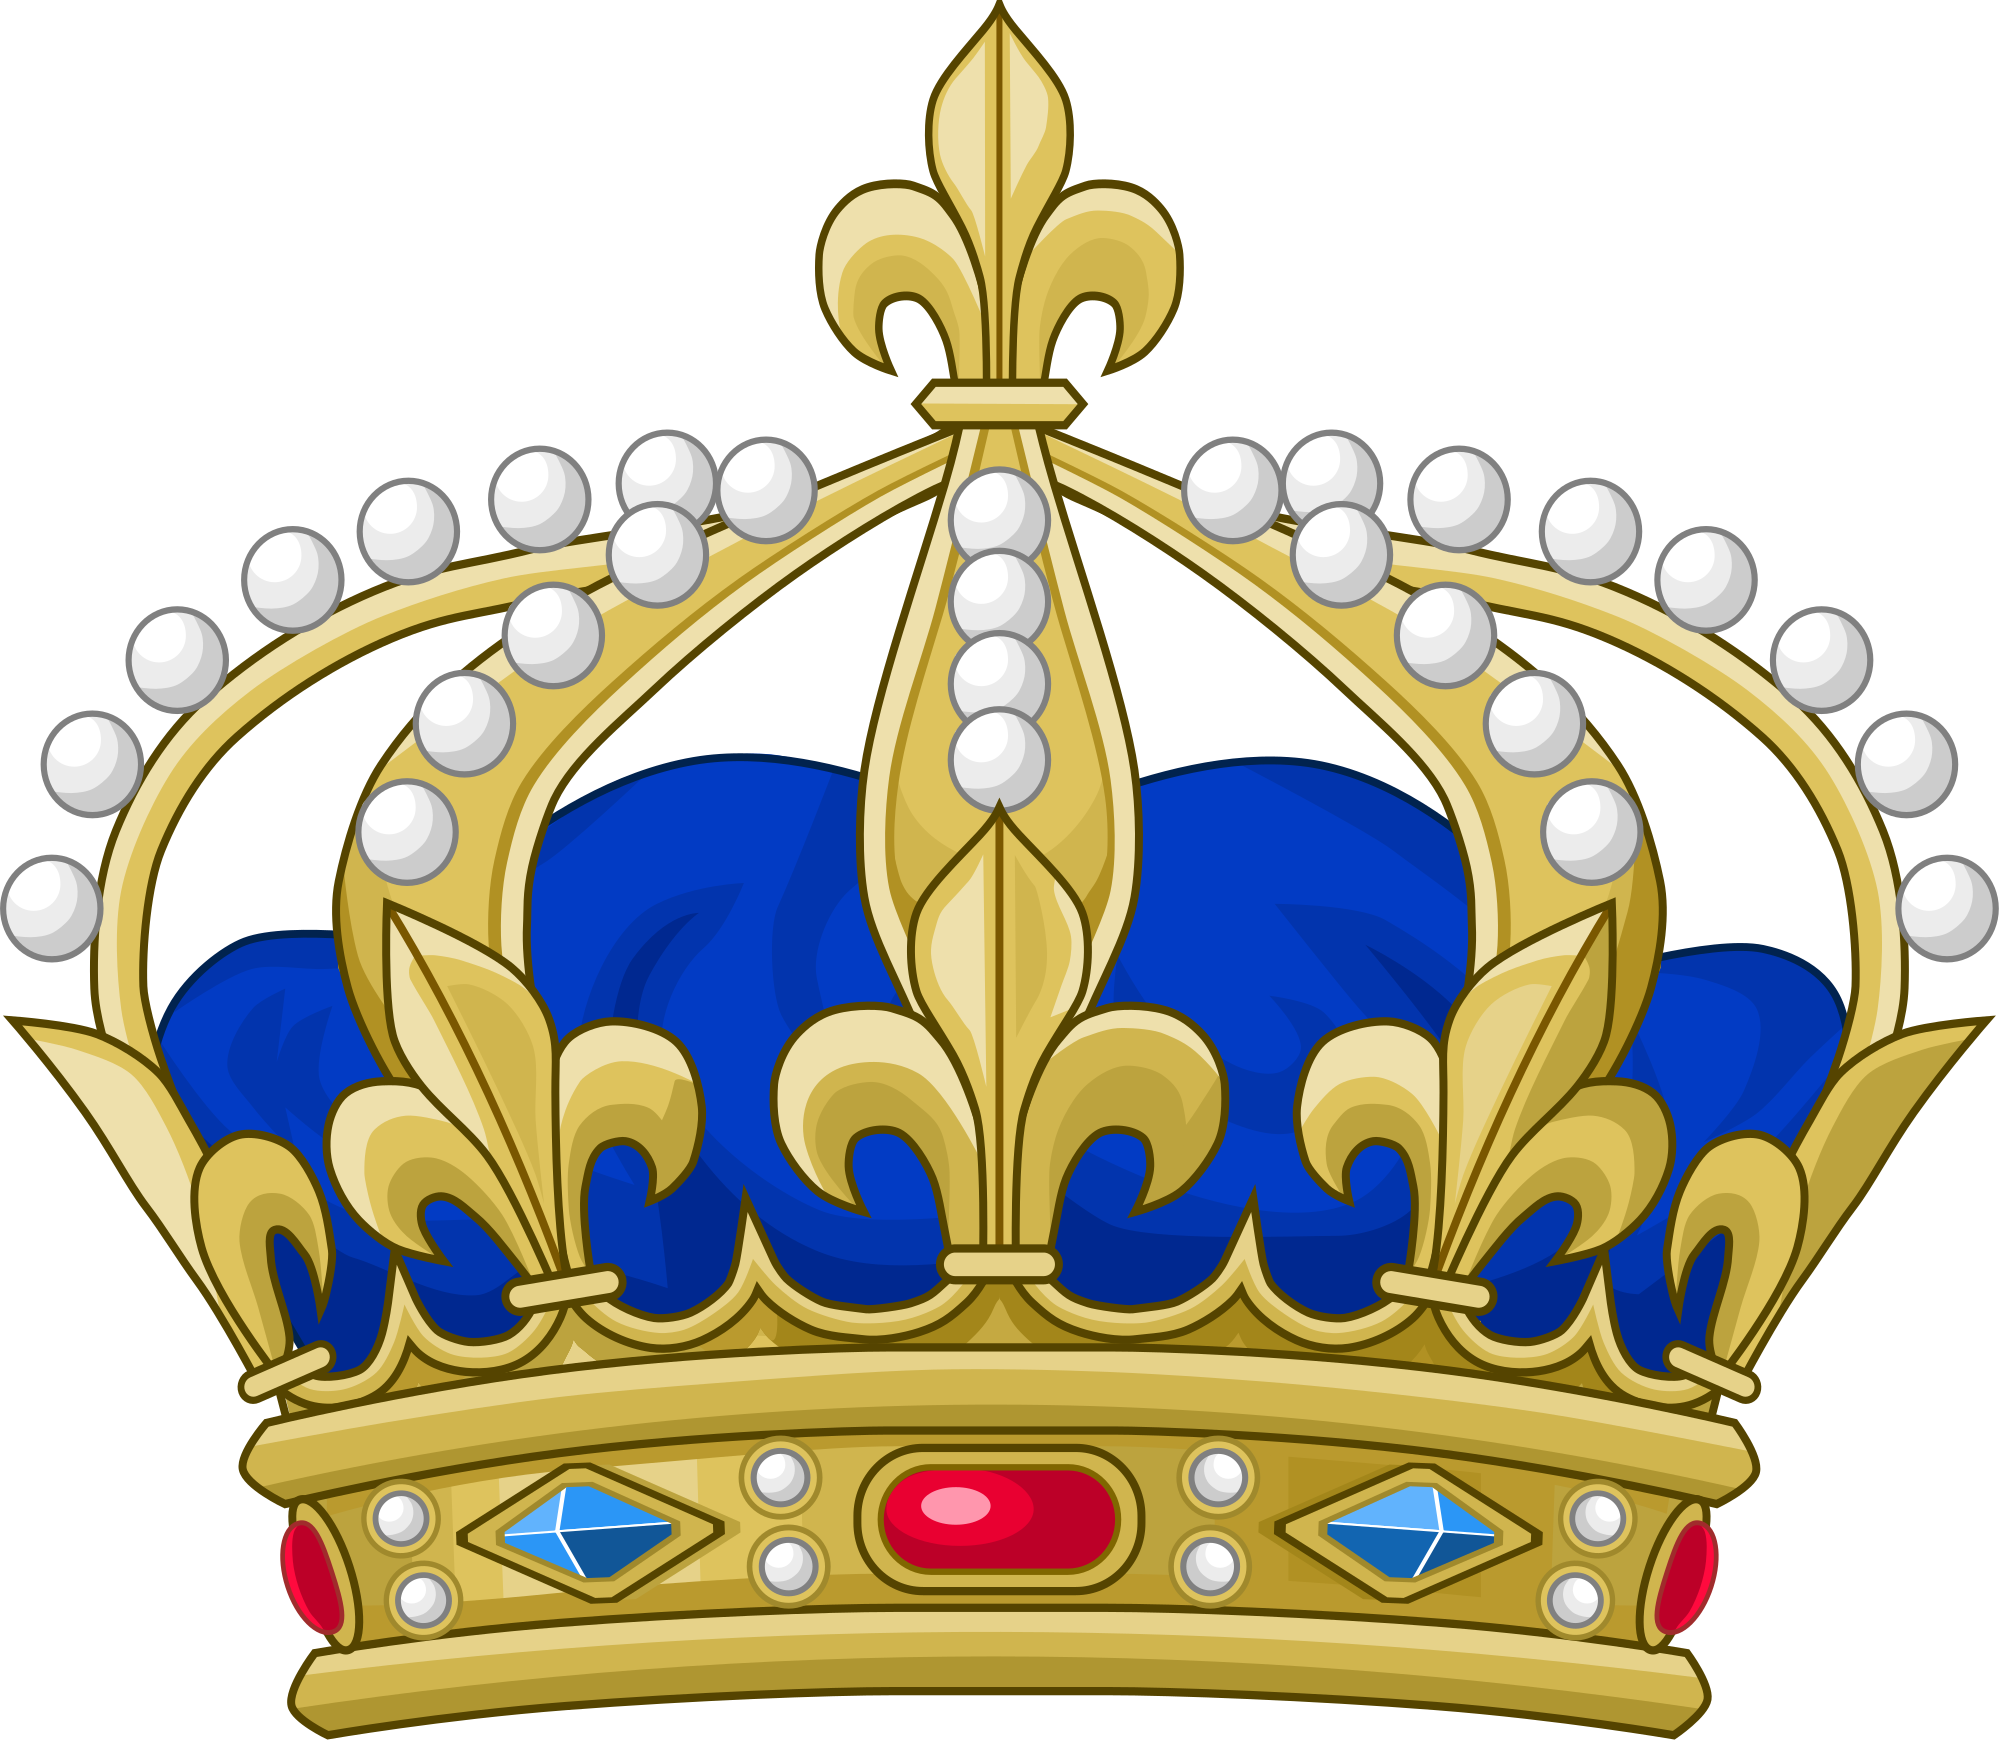 File:Royal Crown of France.svg - Wikimedia Commons graphic freeuse library